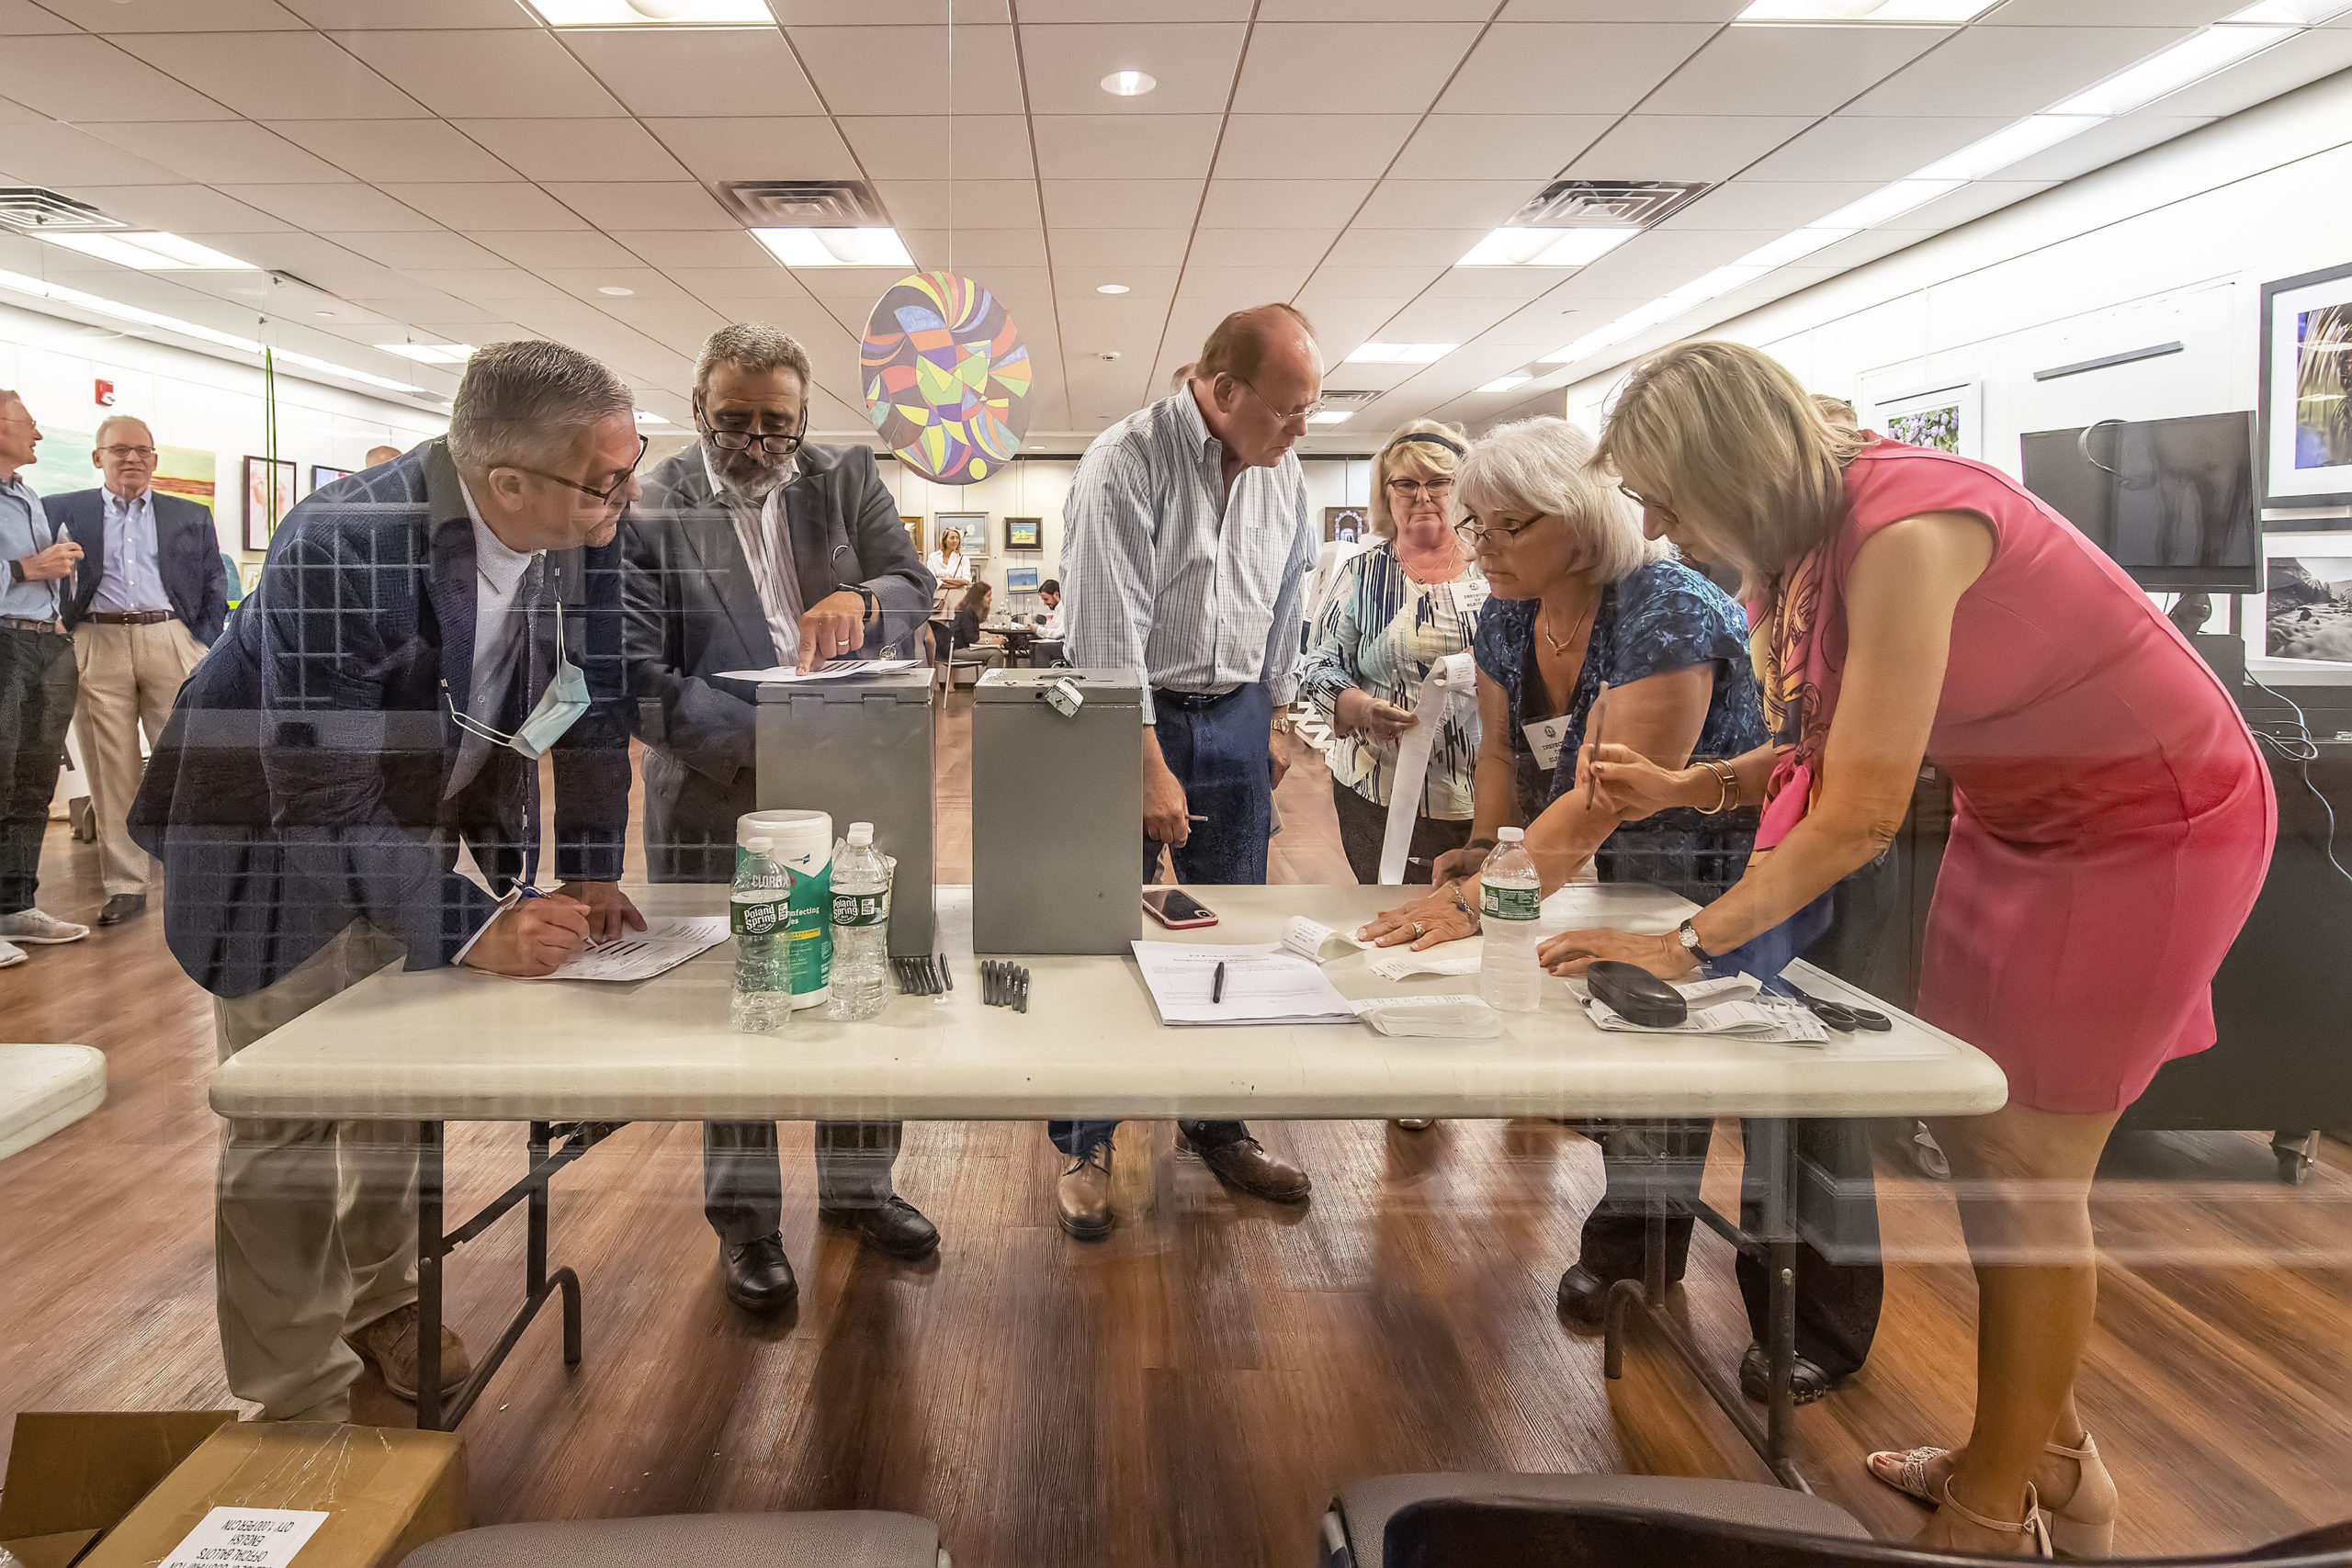 The vote count from each of the voting machines is tabulated during the 2021 Southampton Village Mayoral election at the Southampton Cultural Center on Friday night. MICHALE HELLER